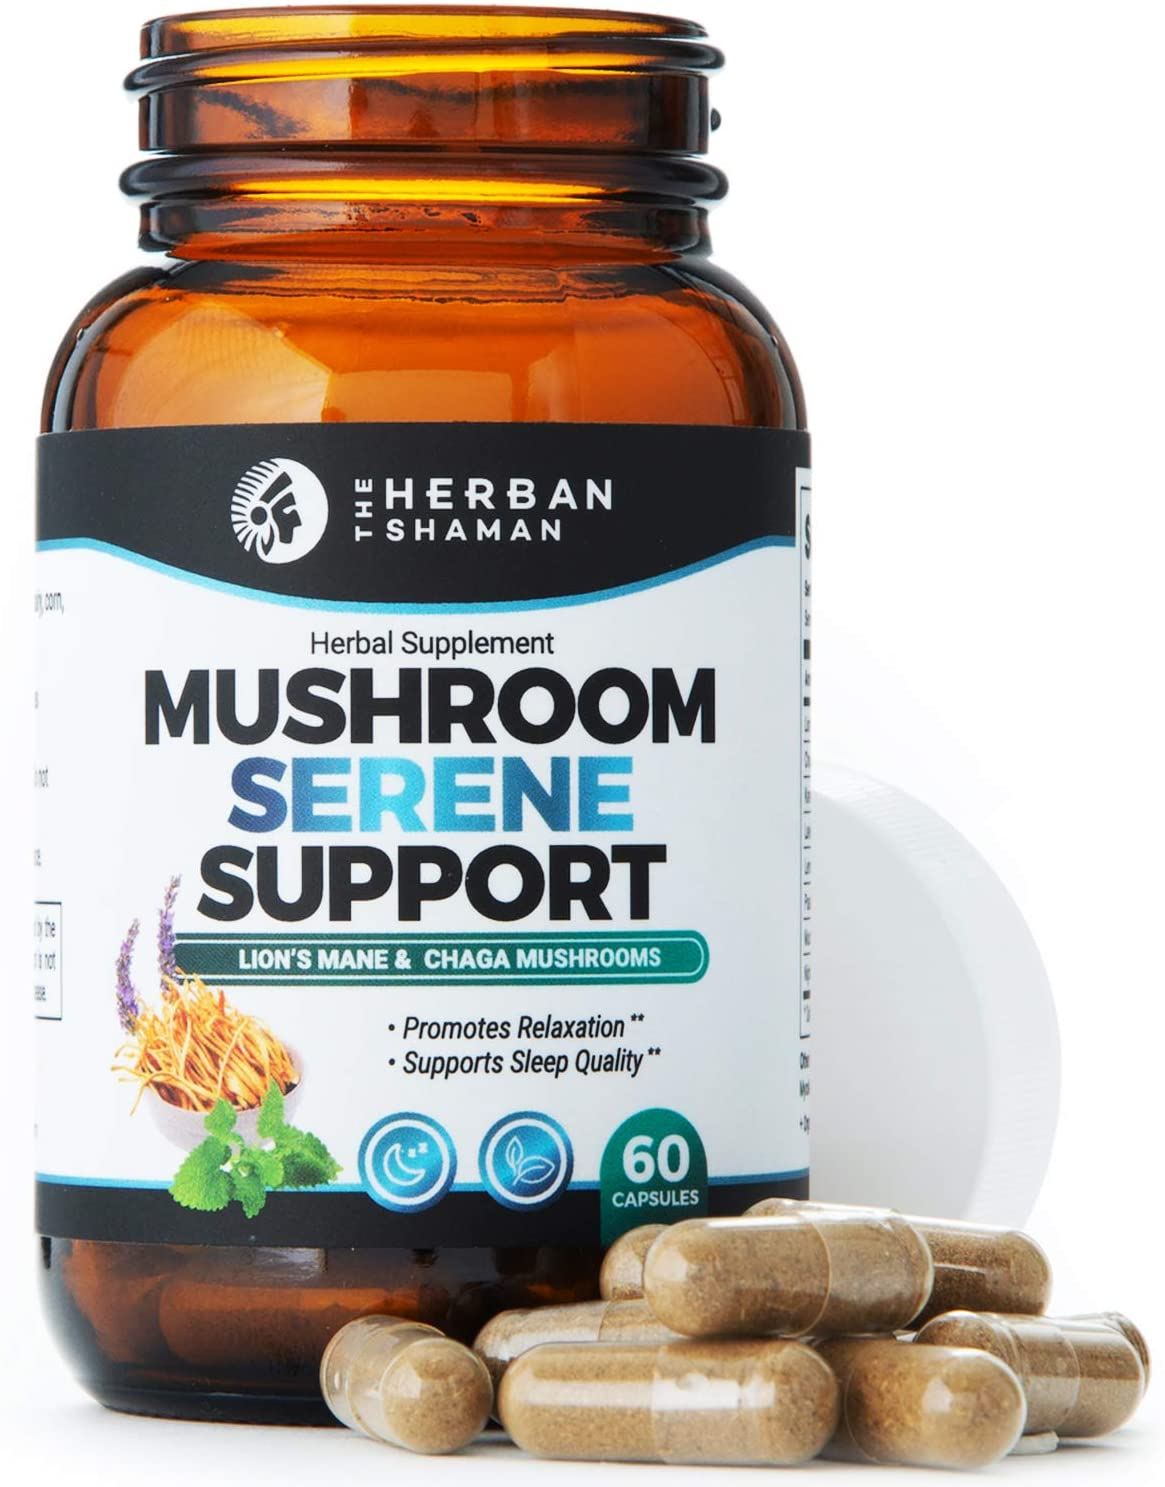 The Herban Shaman Mushroom Supplement Serene Support | Organic Mushroom Herbal Supplement | Lions Mane, Kava Root, Lavender & Passion Flower, Mucuna Pruriens, Chaga, Cereus (60 Capsules)